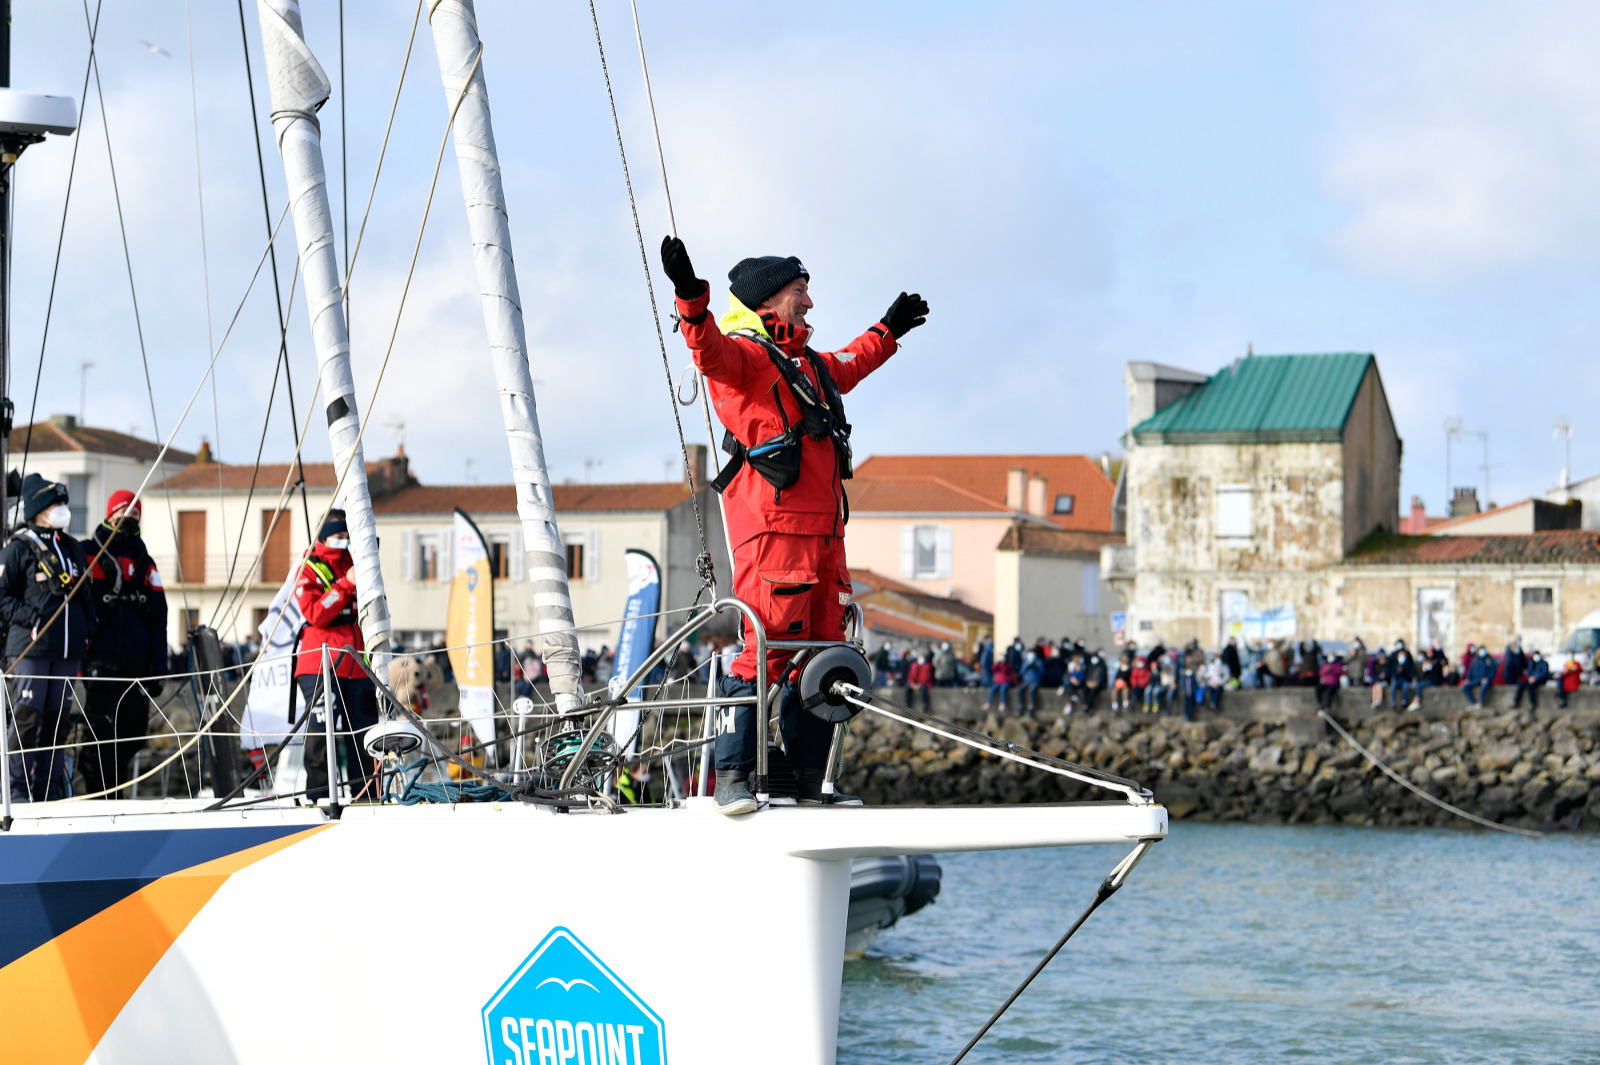 Ari HHusela arrives in Les Sables d'Olonne to a hero's welcome